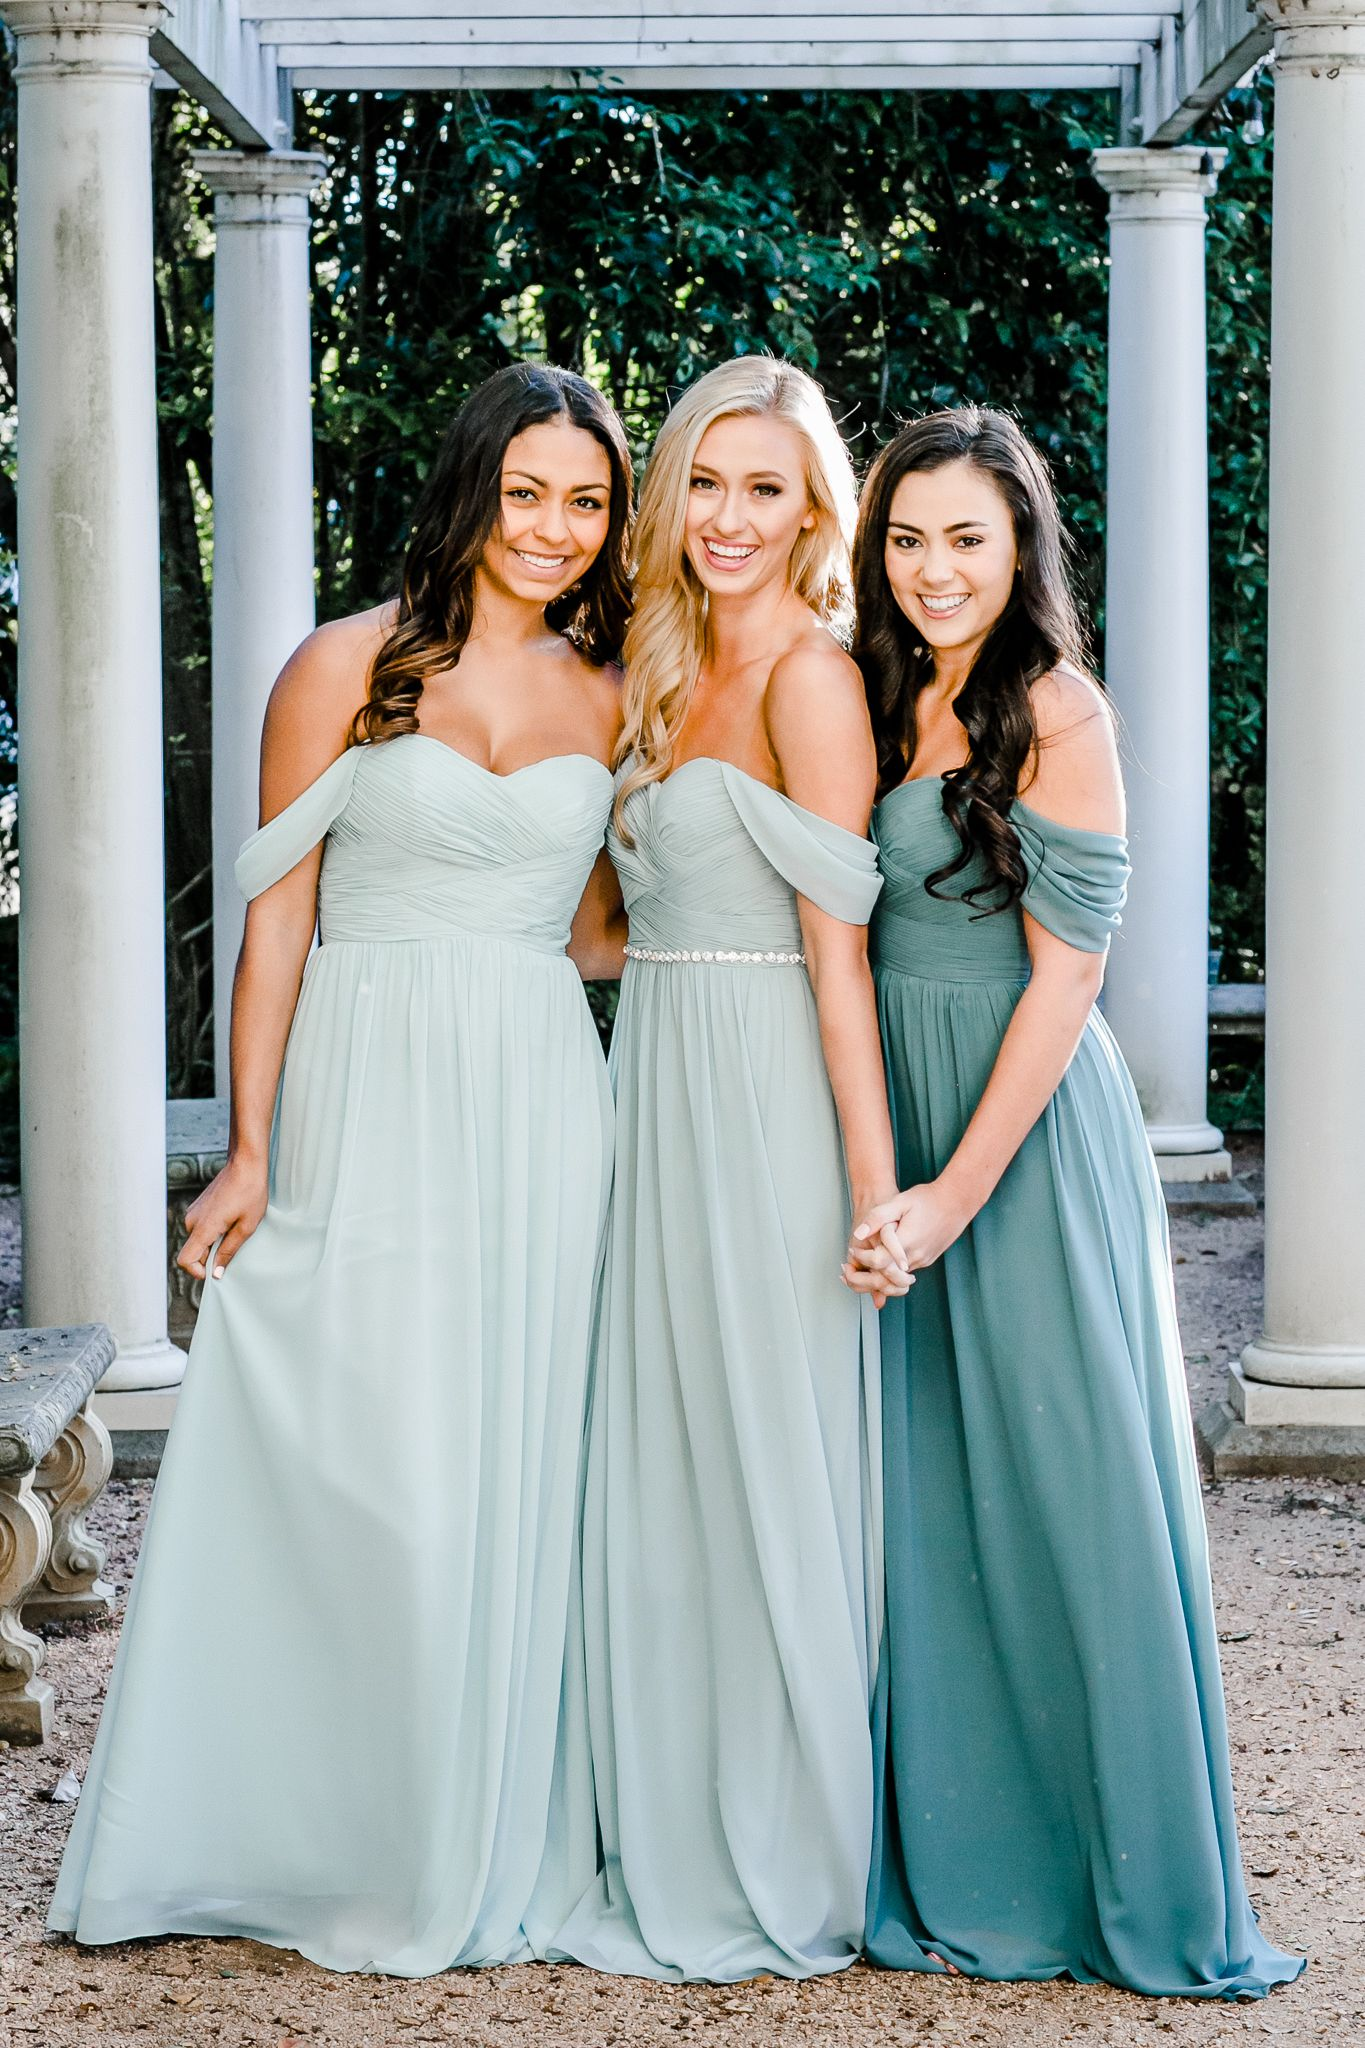 0dccc47b2a1 Mix and Match Revelry Bridesmaid Dresses and Separates. Dresses pictured in  Powder Sky